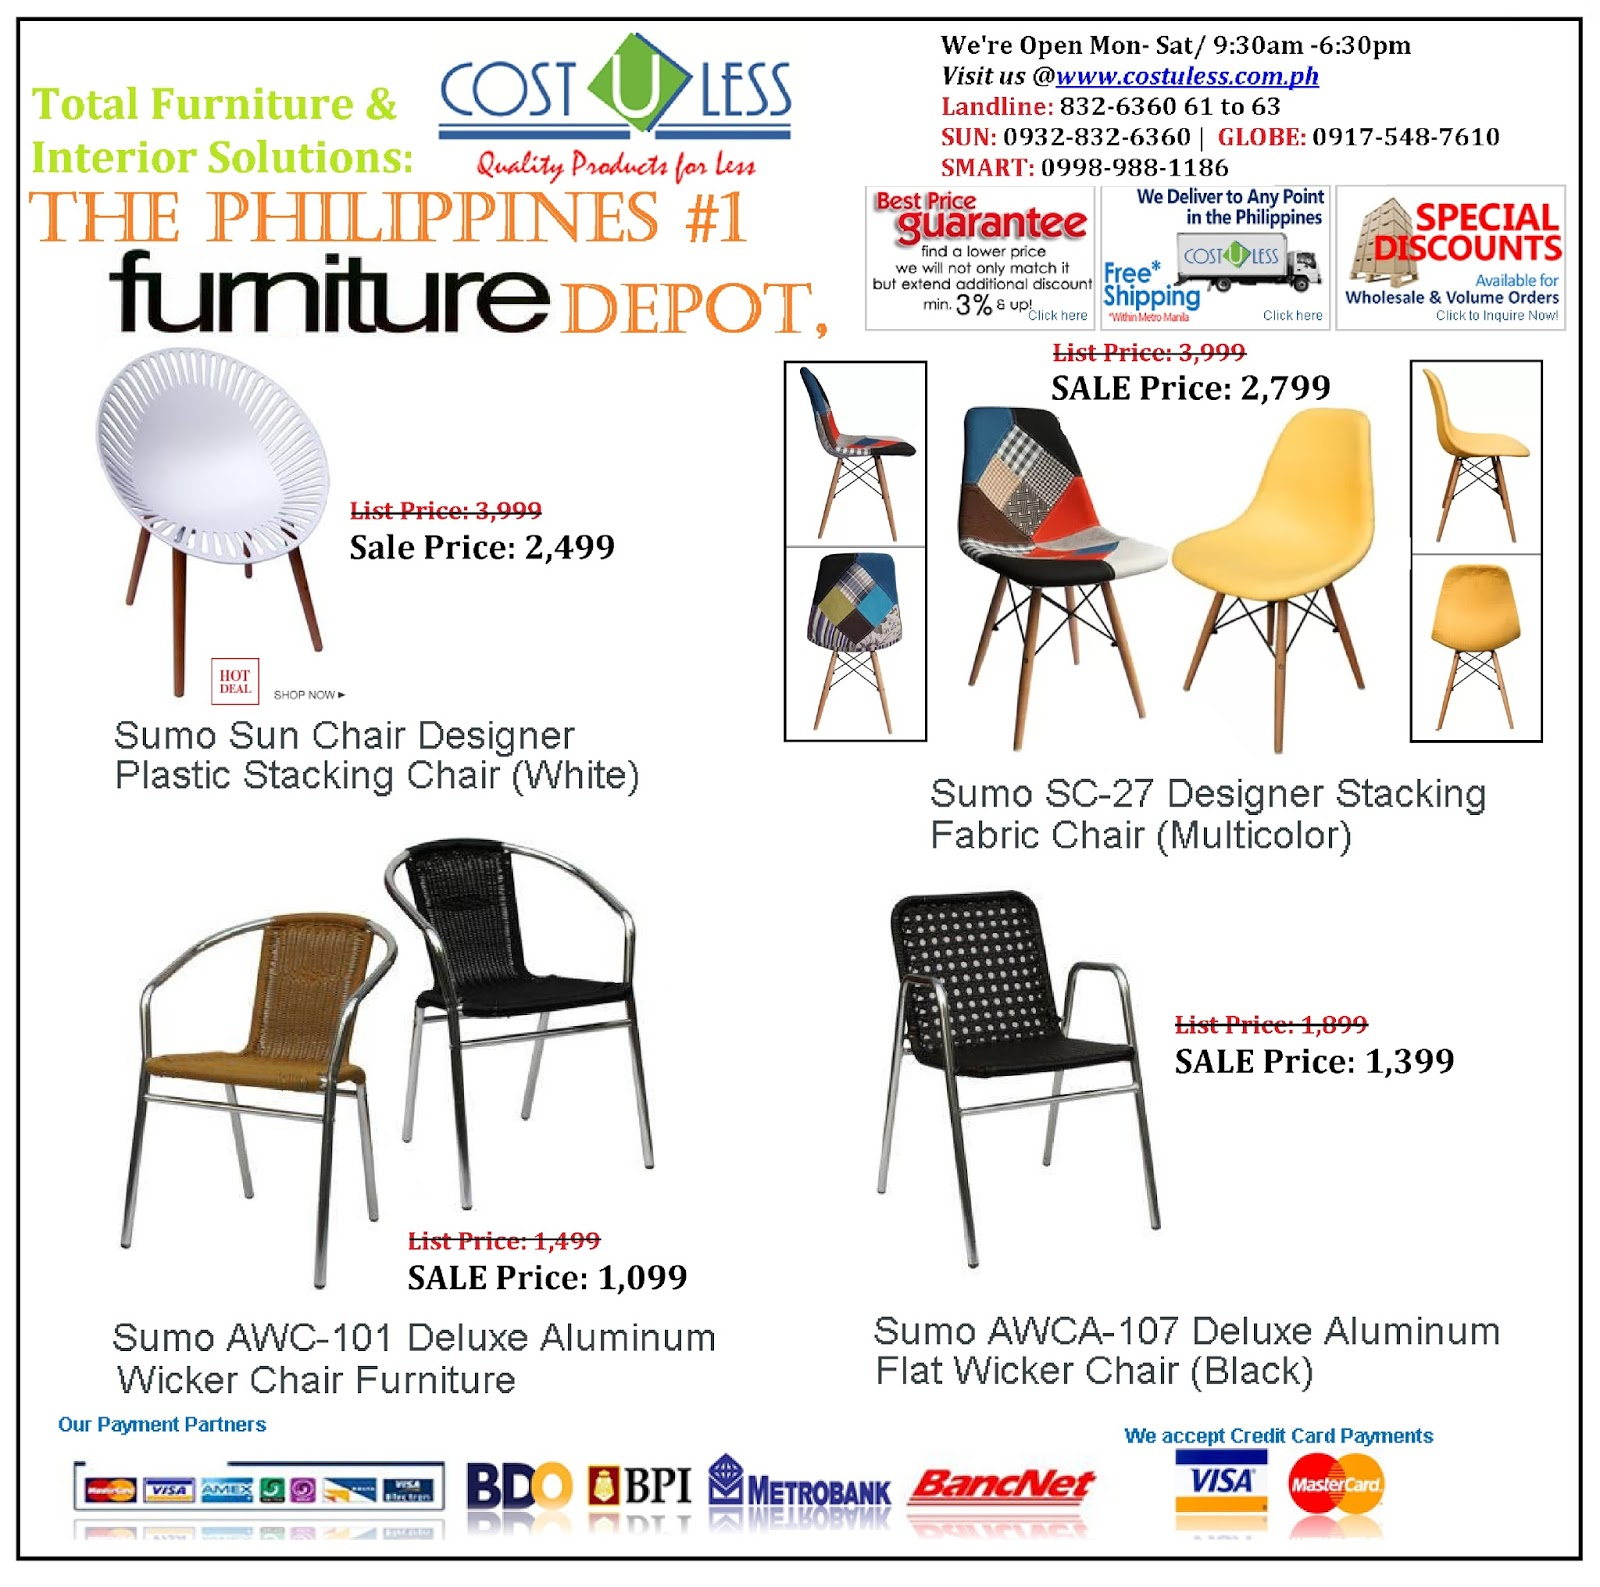 Restaurant Furniture For Less Cost U Less Office Furniture Manila Furniture Supplier Manila